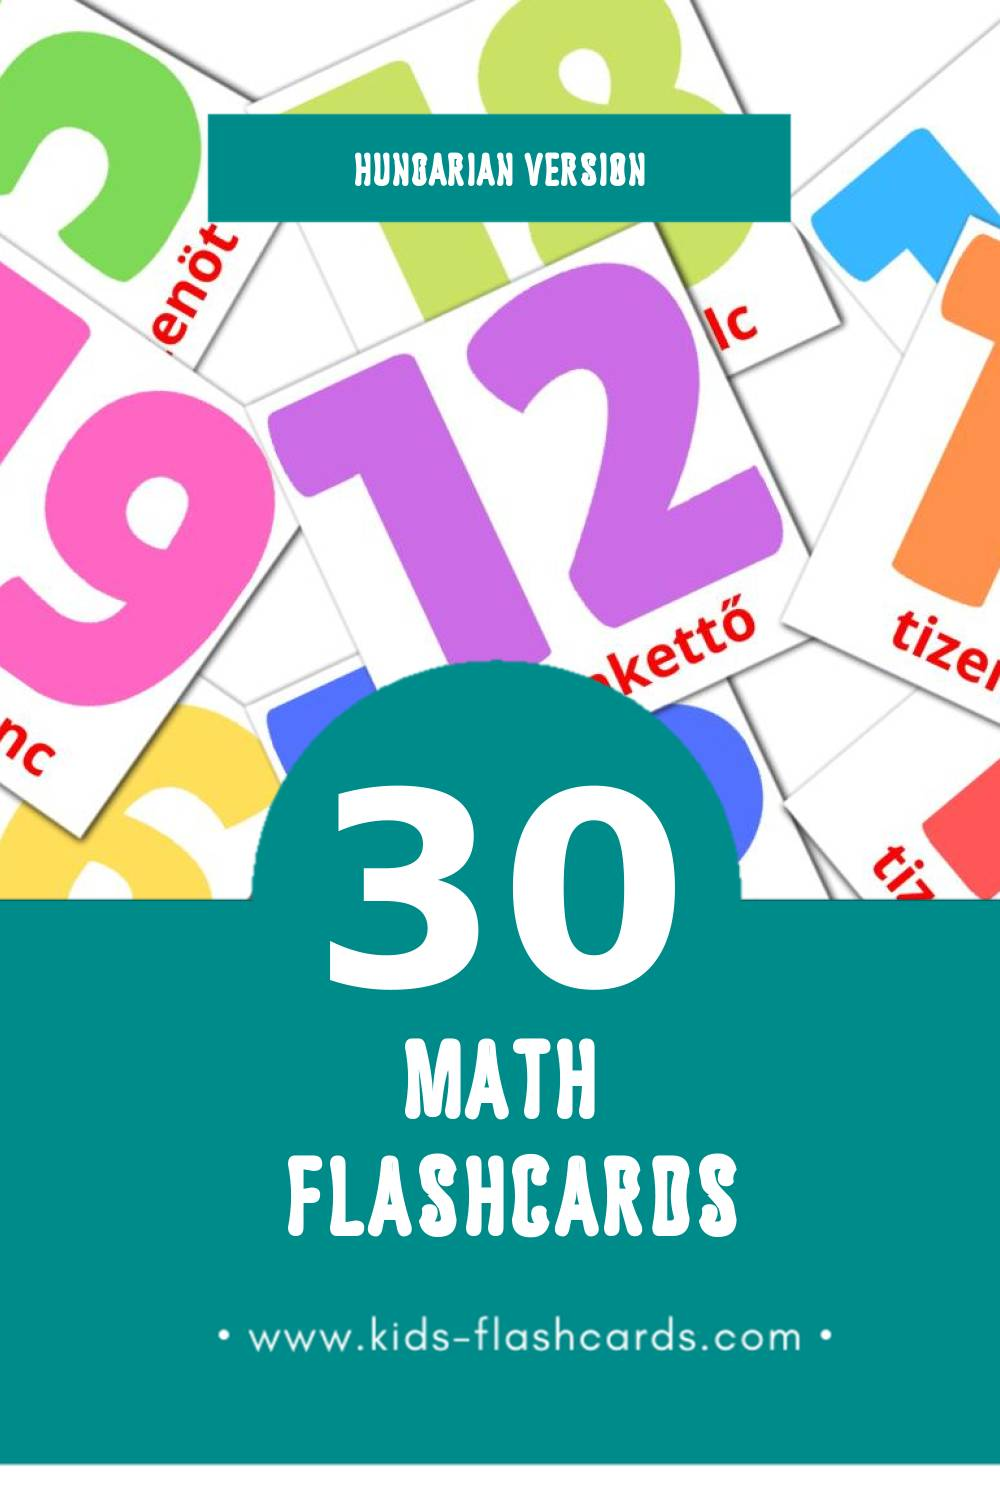 Visual Matematika Flashcards for Toddlers (30 cards in Hungarian)